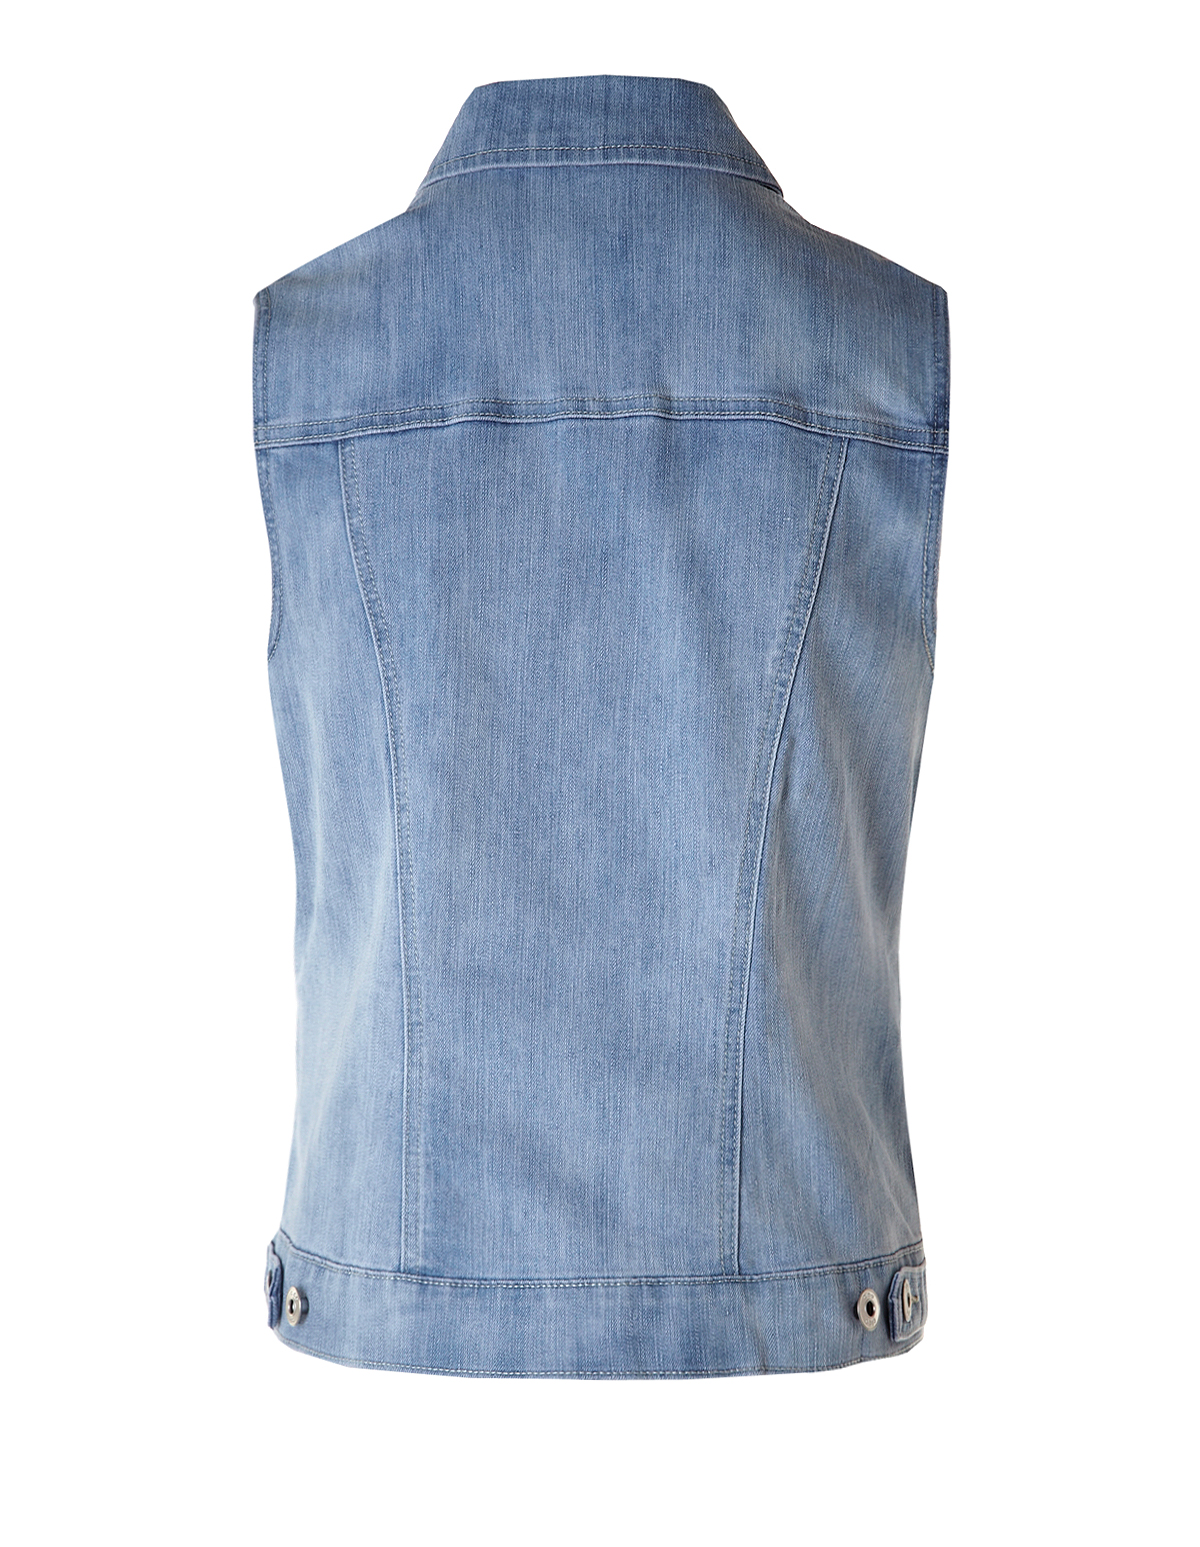 You searched for: light denim vest! Etsy is the home to thousands of handmade, vintage, and one-of-a-kind products and gifts related to your search. No matter what you're looking for or where you are in the world, our global marketplace of sellers can help you find unique and affordable options.